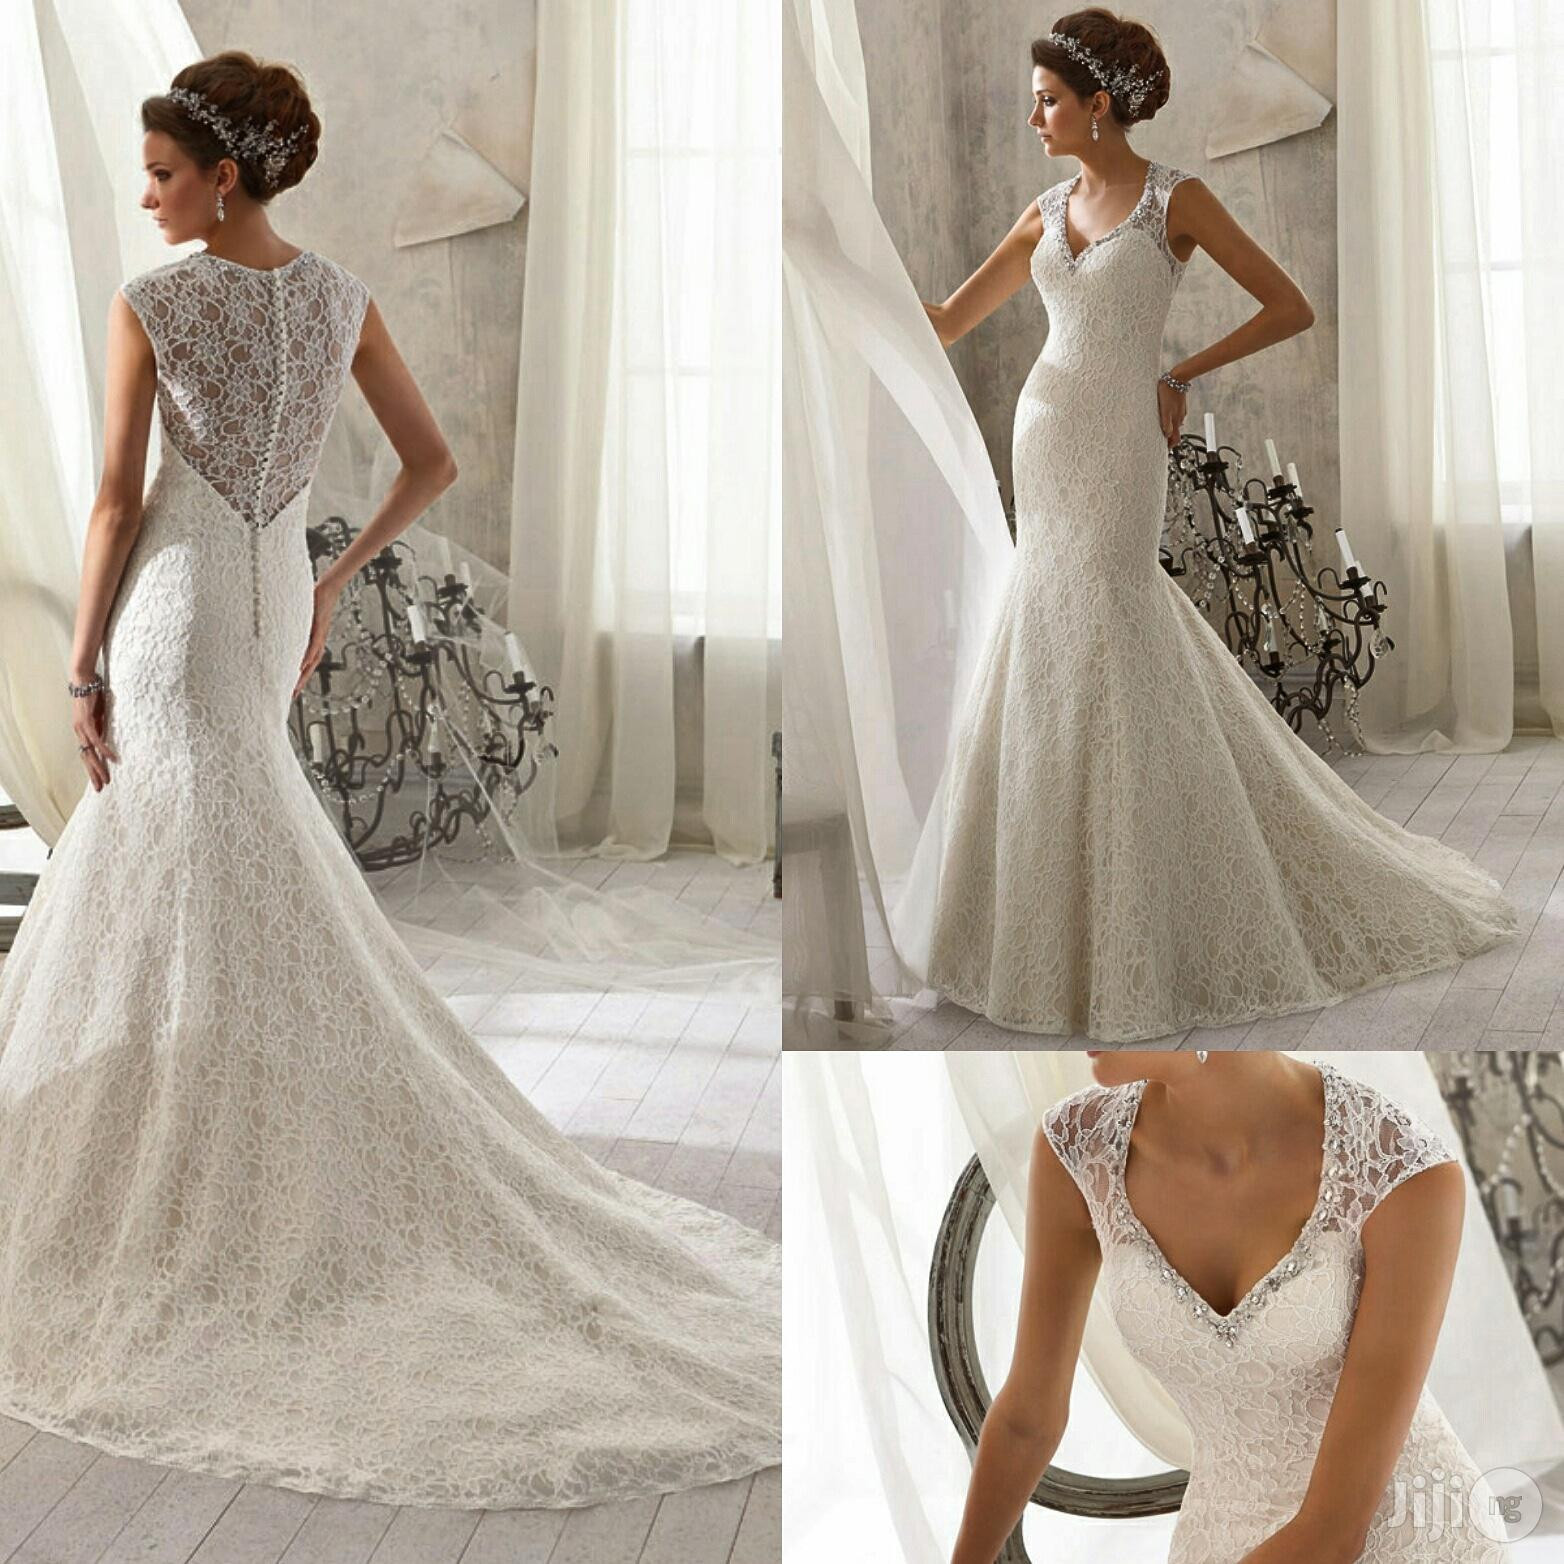 Used Wedding Dress For Sale In Mushin Wedding Wear Accessories Tola Gboyega Jiji Ng For Sale In Mushin Buy Wedding Wear Accessories From Tola Gboyega On Jiji Ng,Wedding Guest Zara Evening Dresses